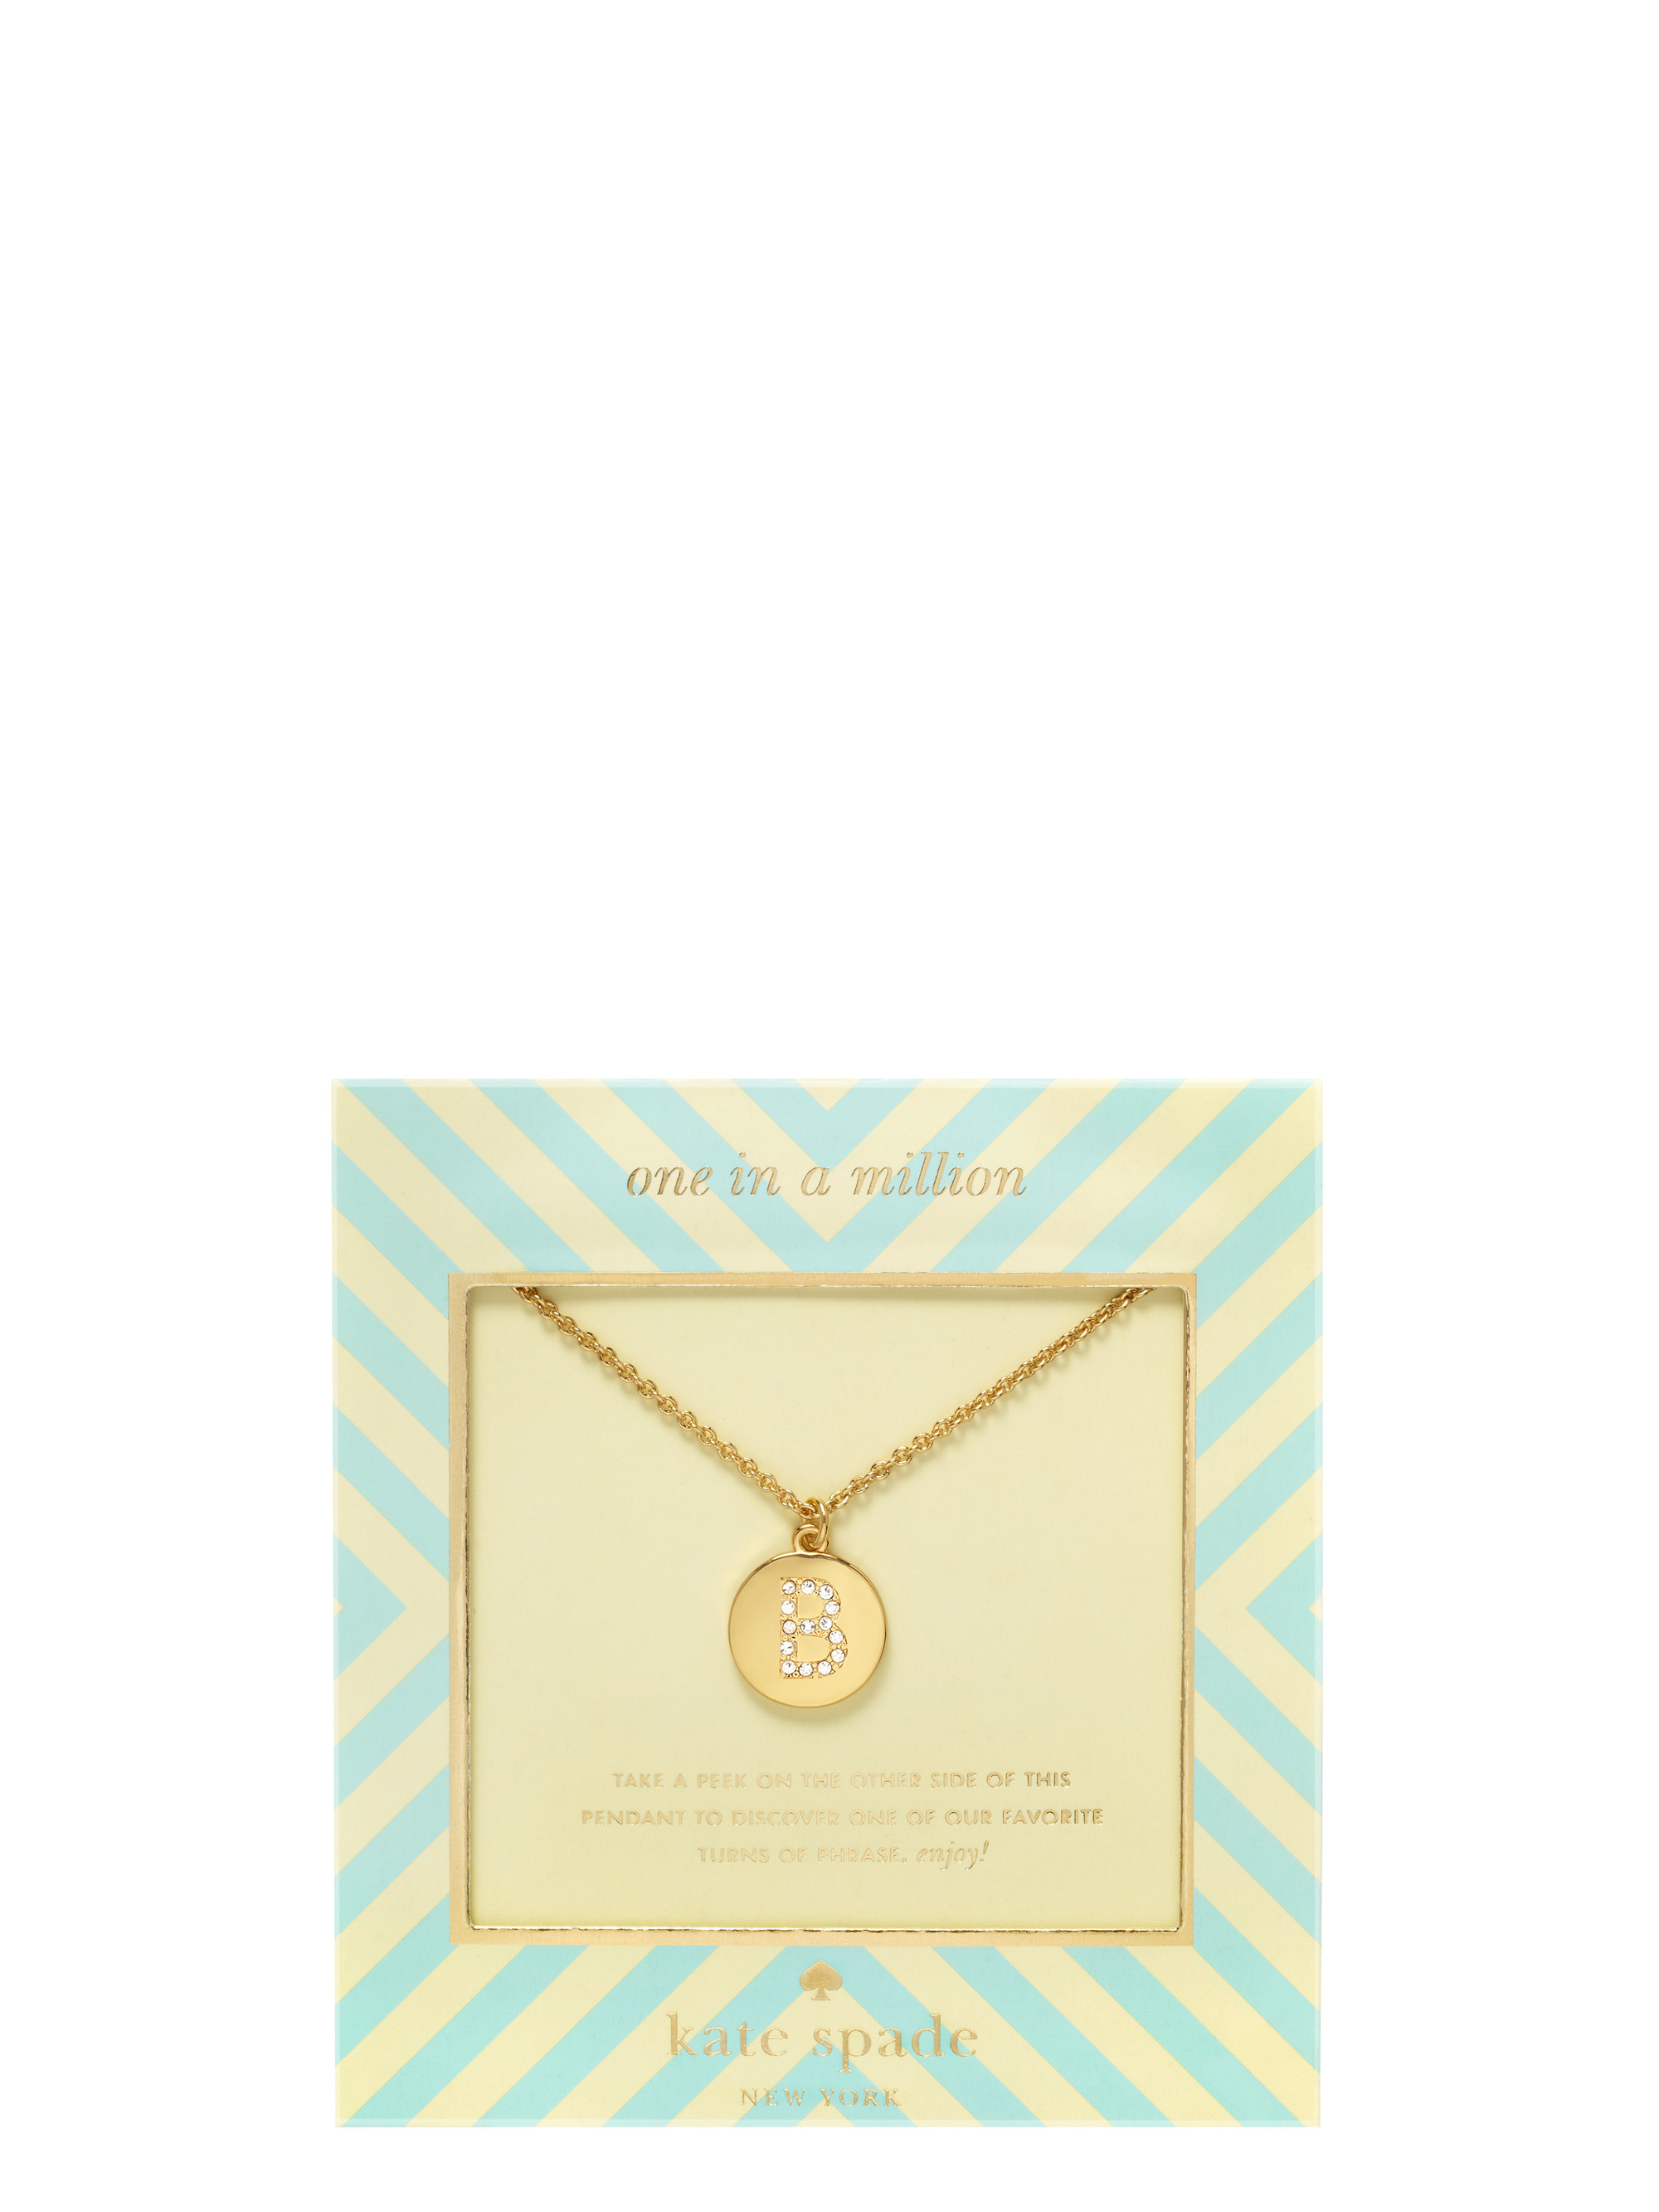 Kate Spade B Pave Initial Letter Pendant in Oatmeal (Natural)